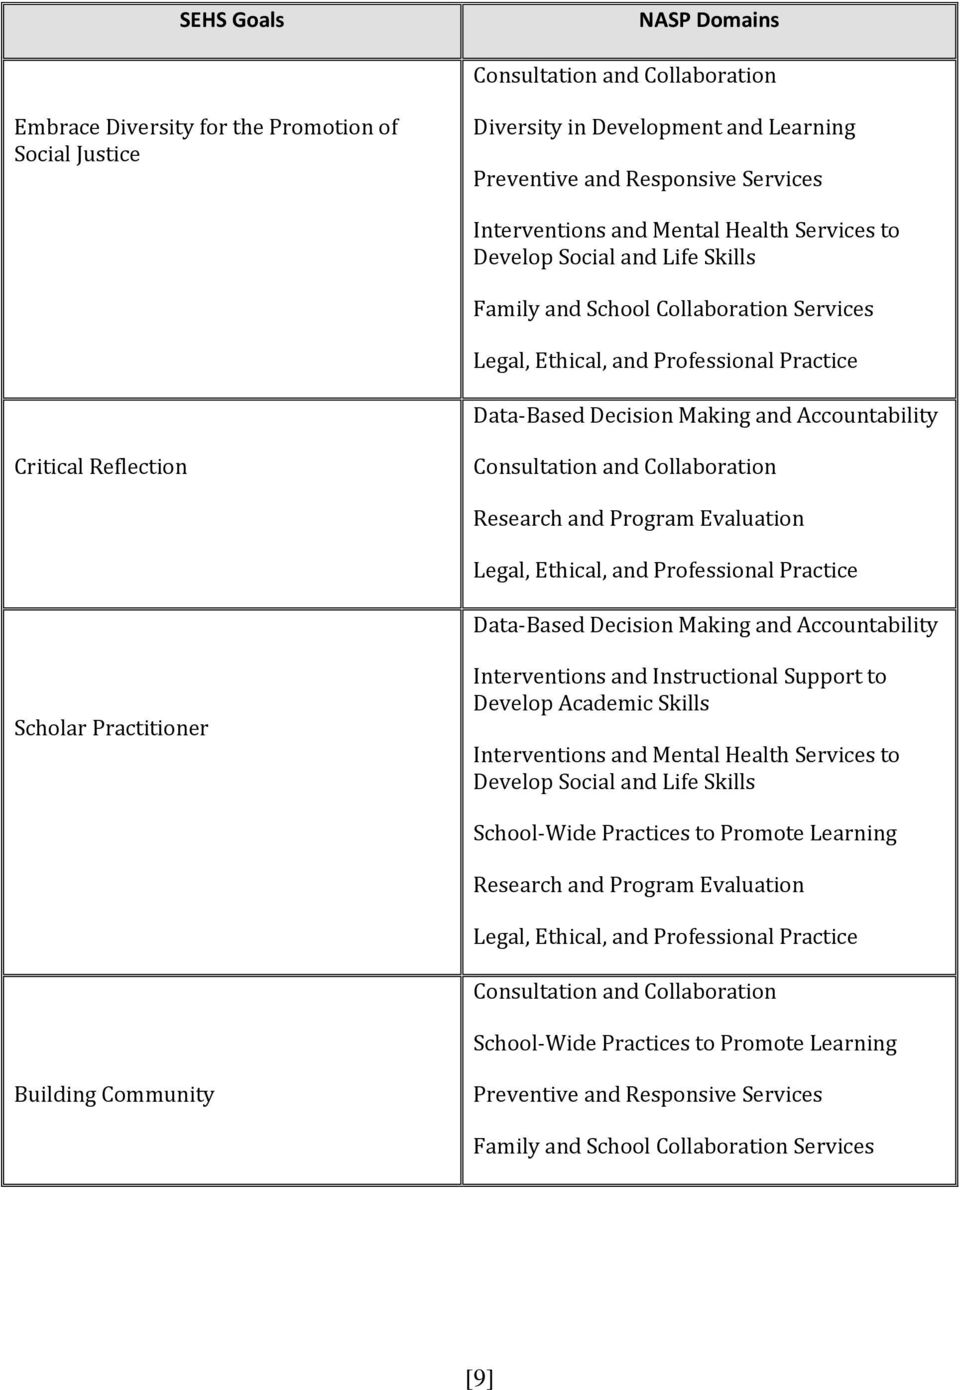 Reflection Consultation and Collaboration Research and Program Evaluation Legal, Ethical, and Professional Practice Data-Based Decision Making and Accountability Scholar Practitioner Interventions